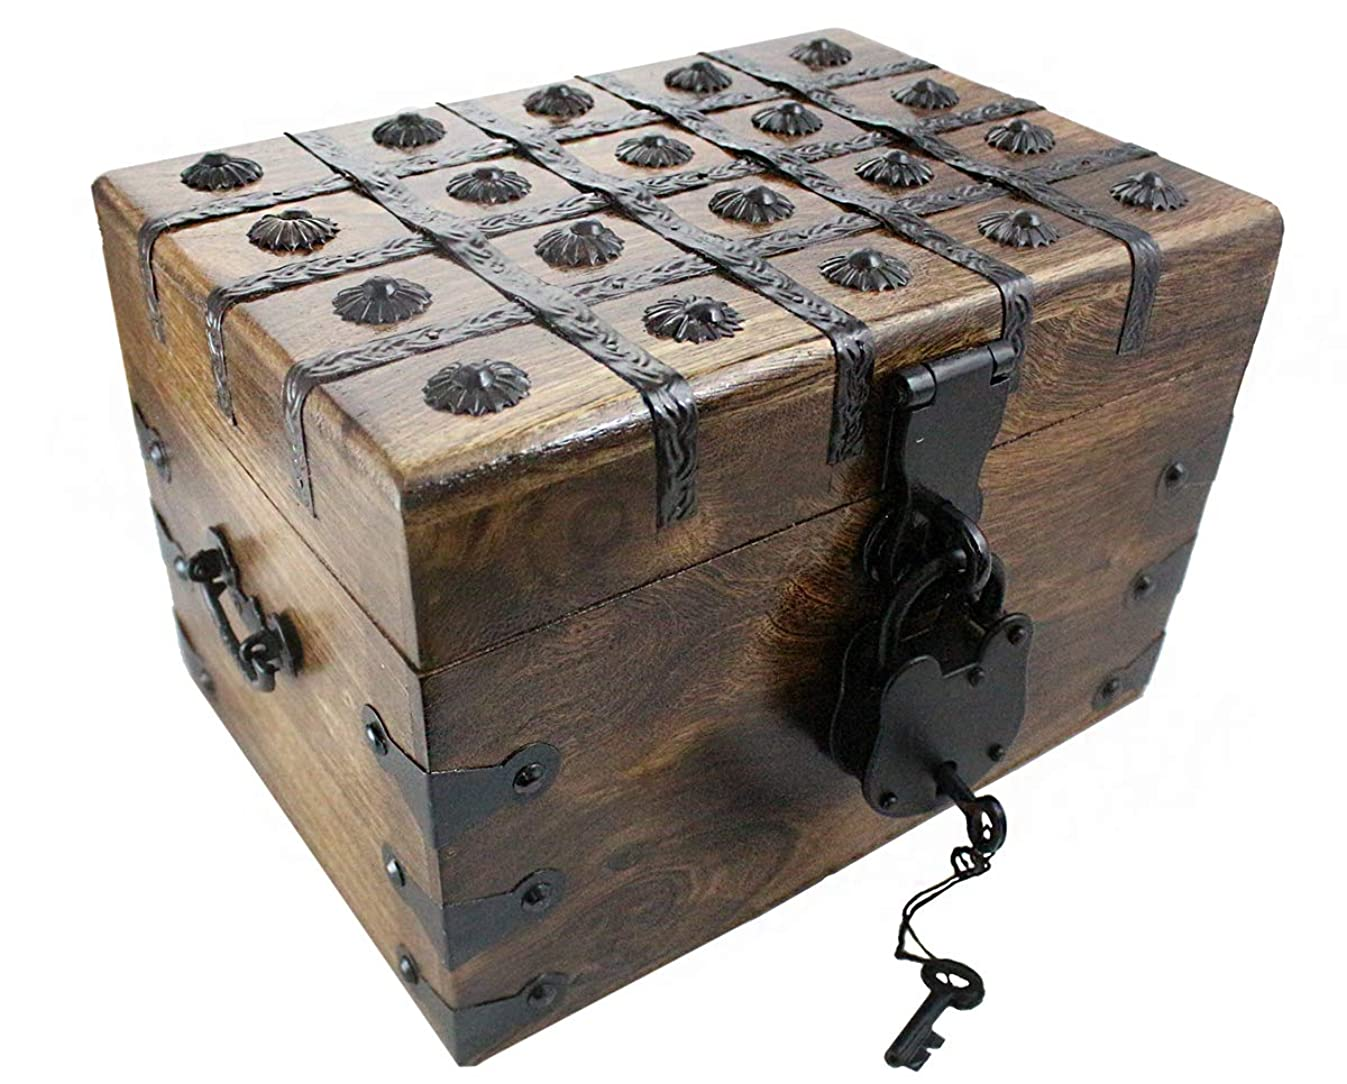 "Treasure Chest Box Pirate Large 12"" x 8"" x 7"" Wooden Locking Party Toy Nautical Accessory with Skeleton Key for Kids by Well Pack Box"